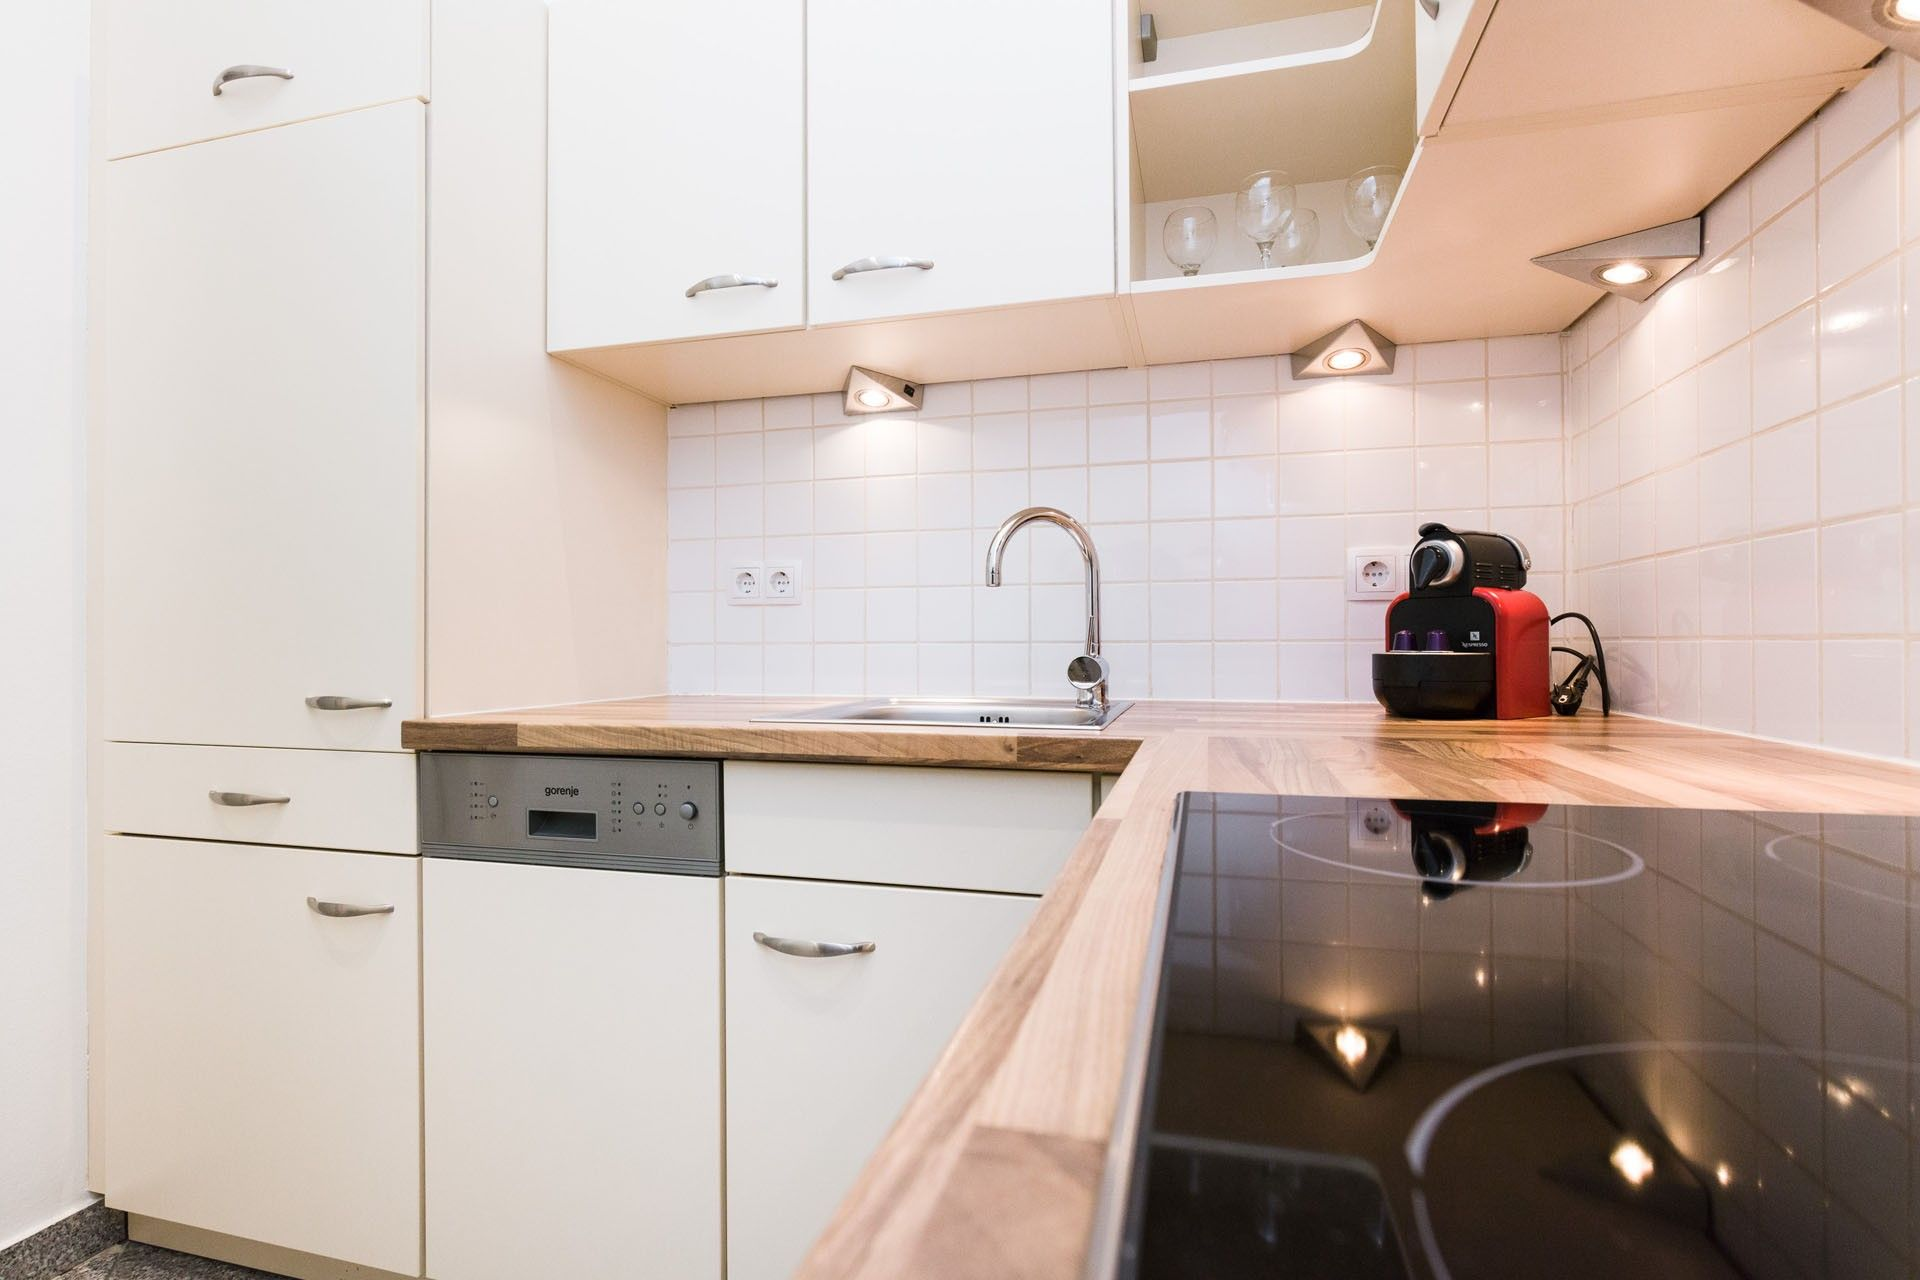 Vienna Prestige Apartments Premium Studio Close to City Center  Alser Strasse 14 Apartments size in m²: 55 District: 1090 Alsergrund Bedroom: 1  Internet, Digital Cable TV, Fully equipped kitchen, Fully furnished interior, Non smoking, Cleaning utensils supplied